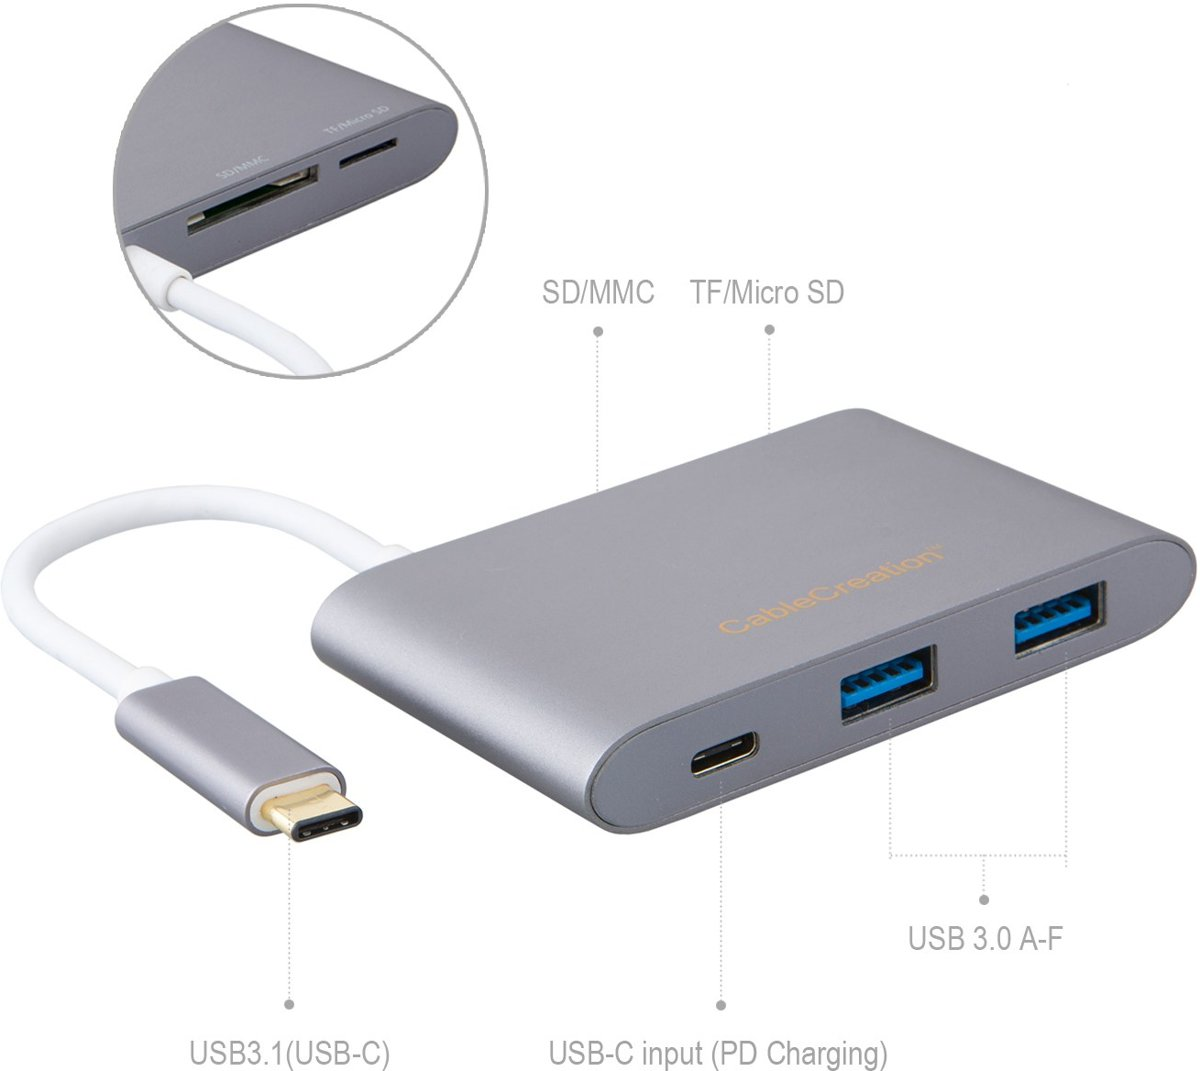 USB Type C HUB 3.1met 2 x USB3.0 Female + type c charging port + MicroSD+SD/MMC